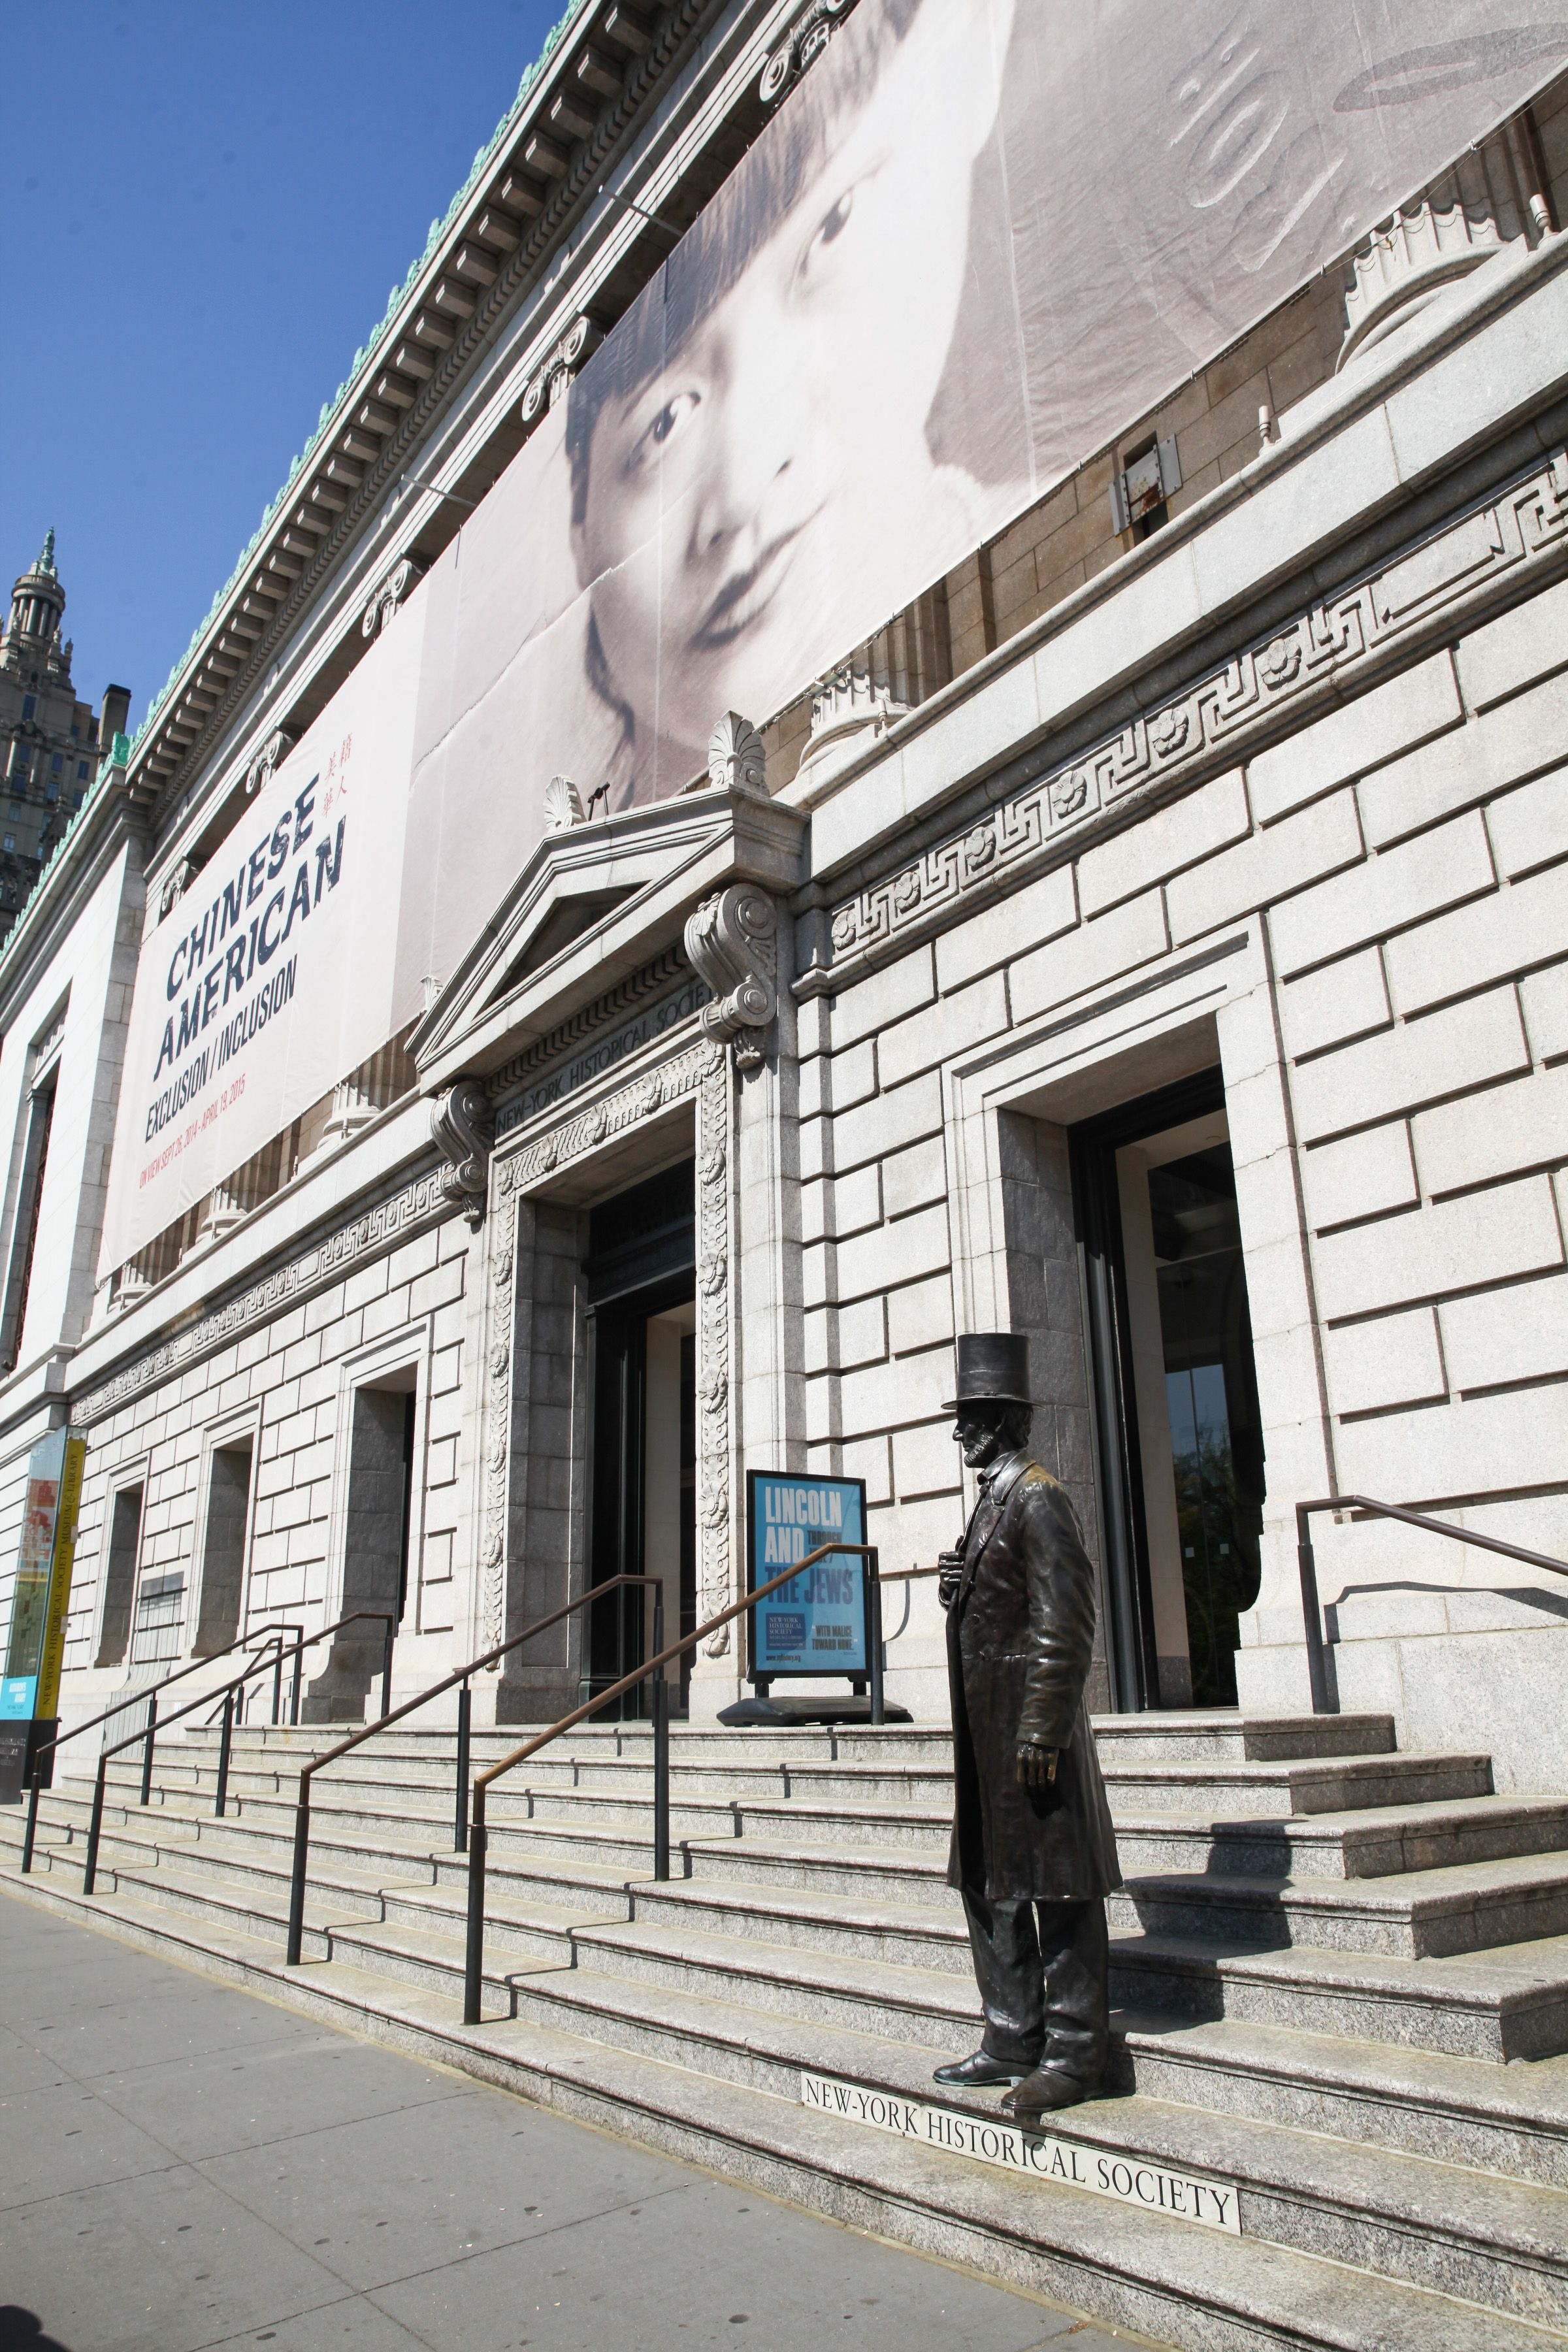 2015 TOWN & COUNTRY Philanthropy Summit-Mosphere, New York Historical Society-Mosphere